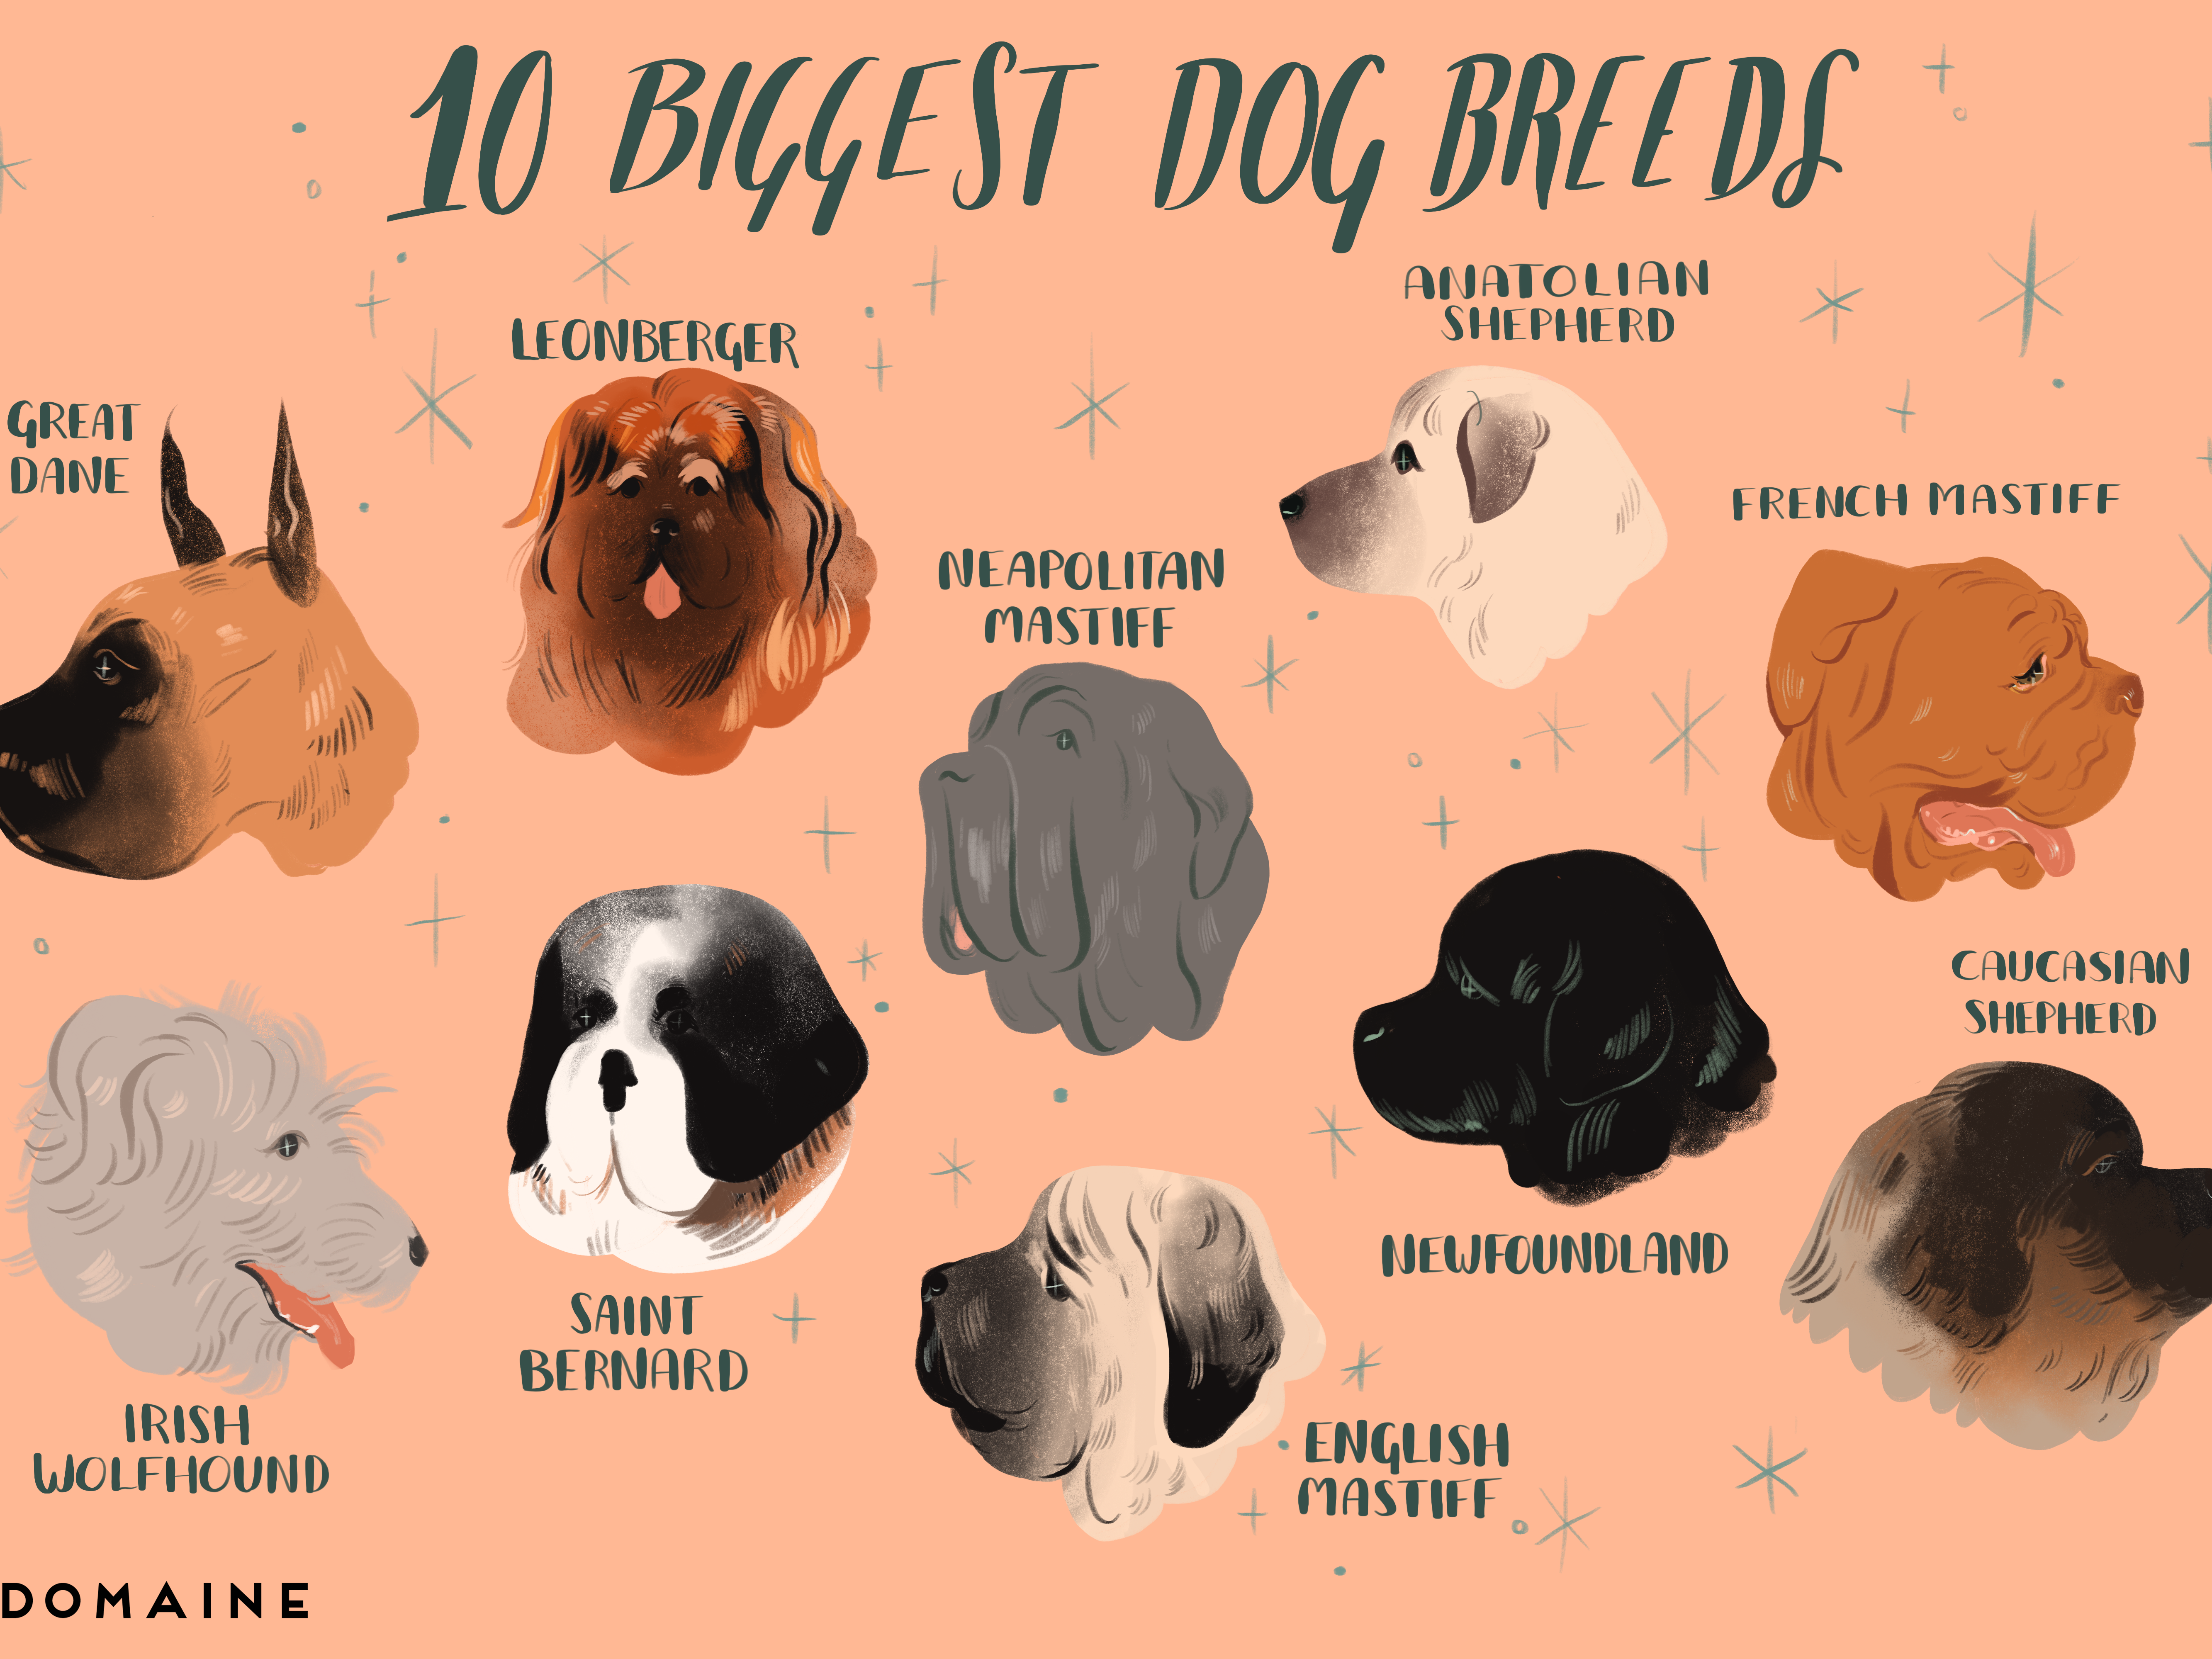 The 10 Biggest Dog Breeds in the World